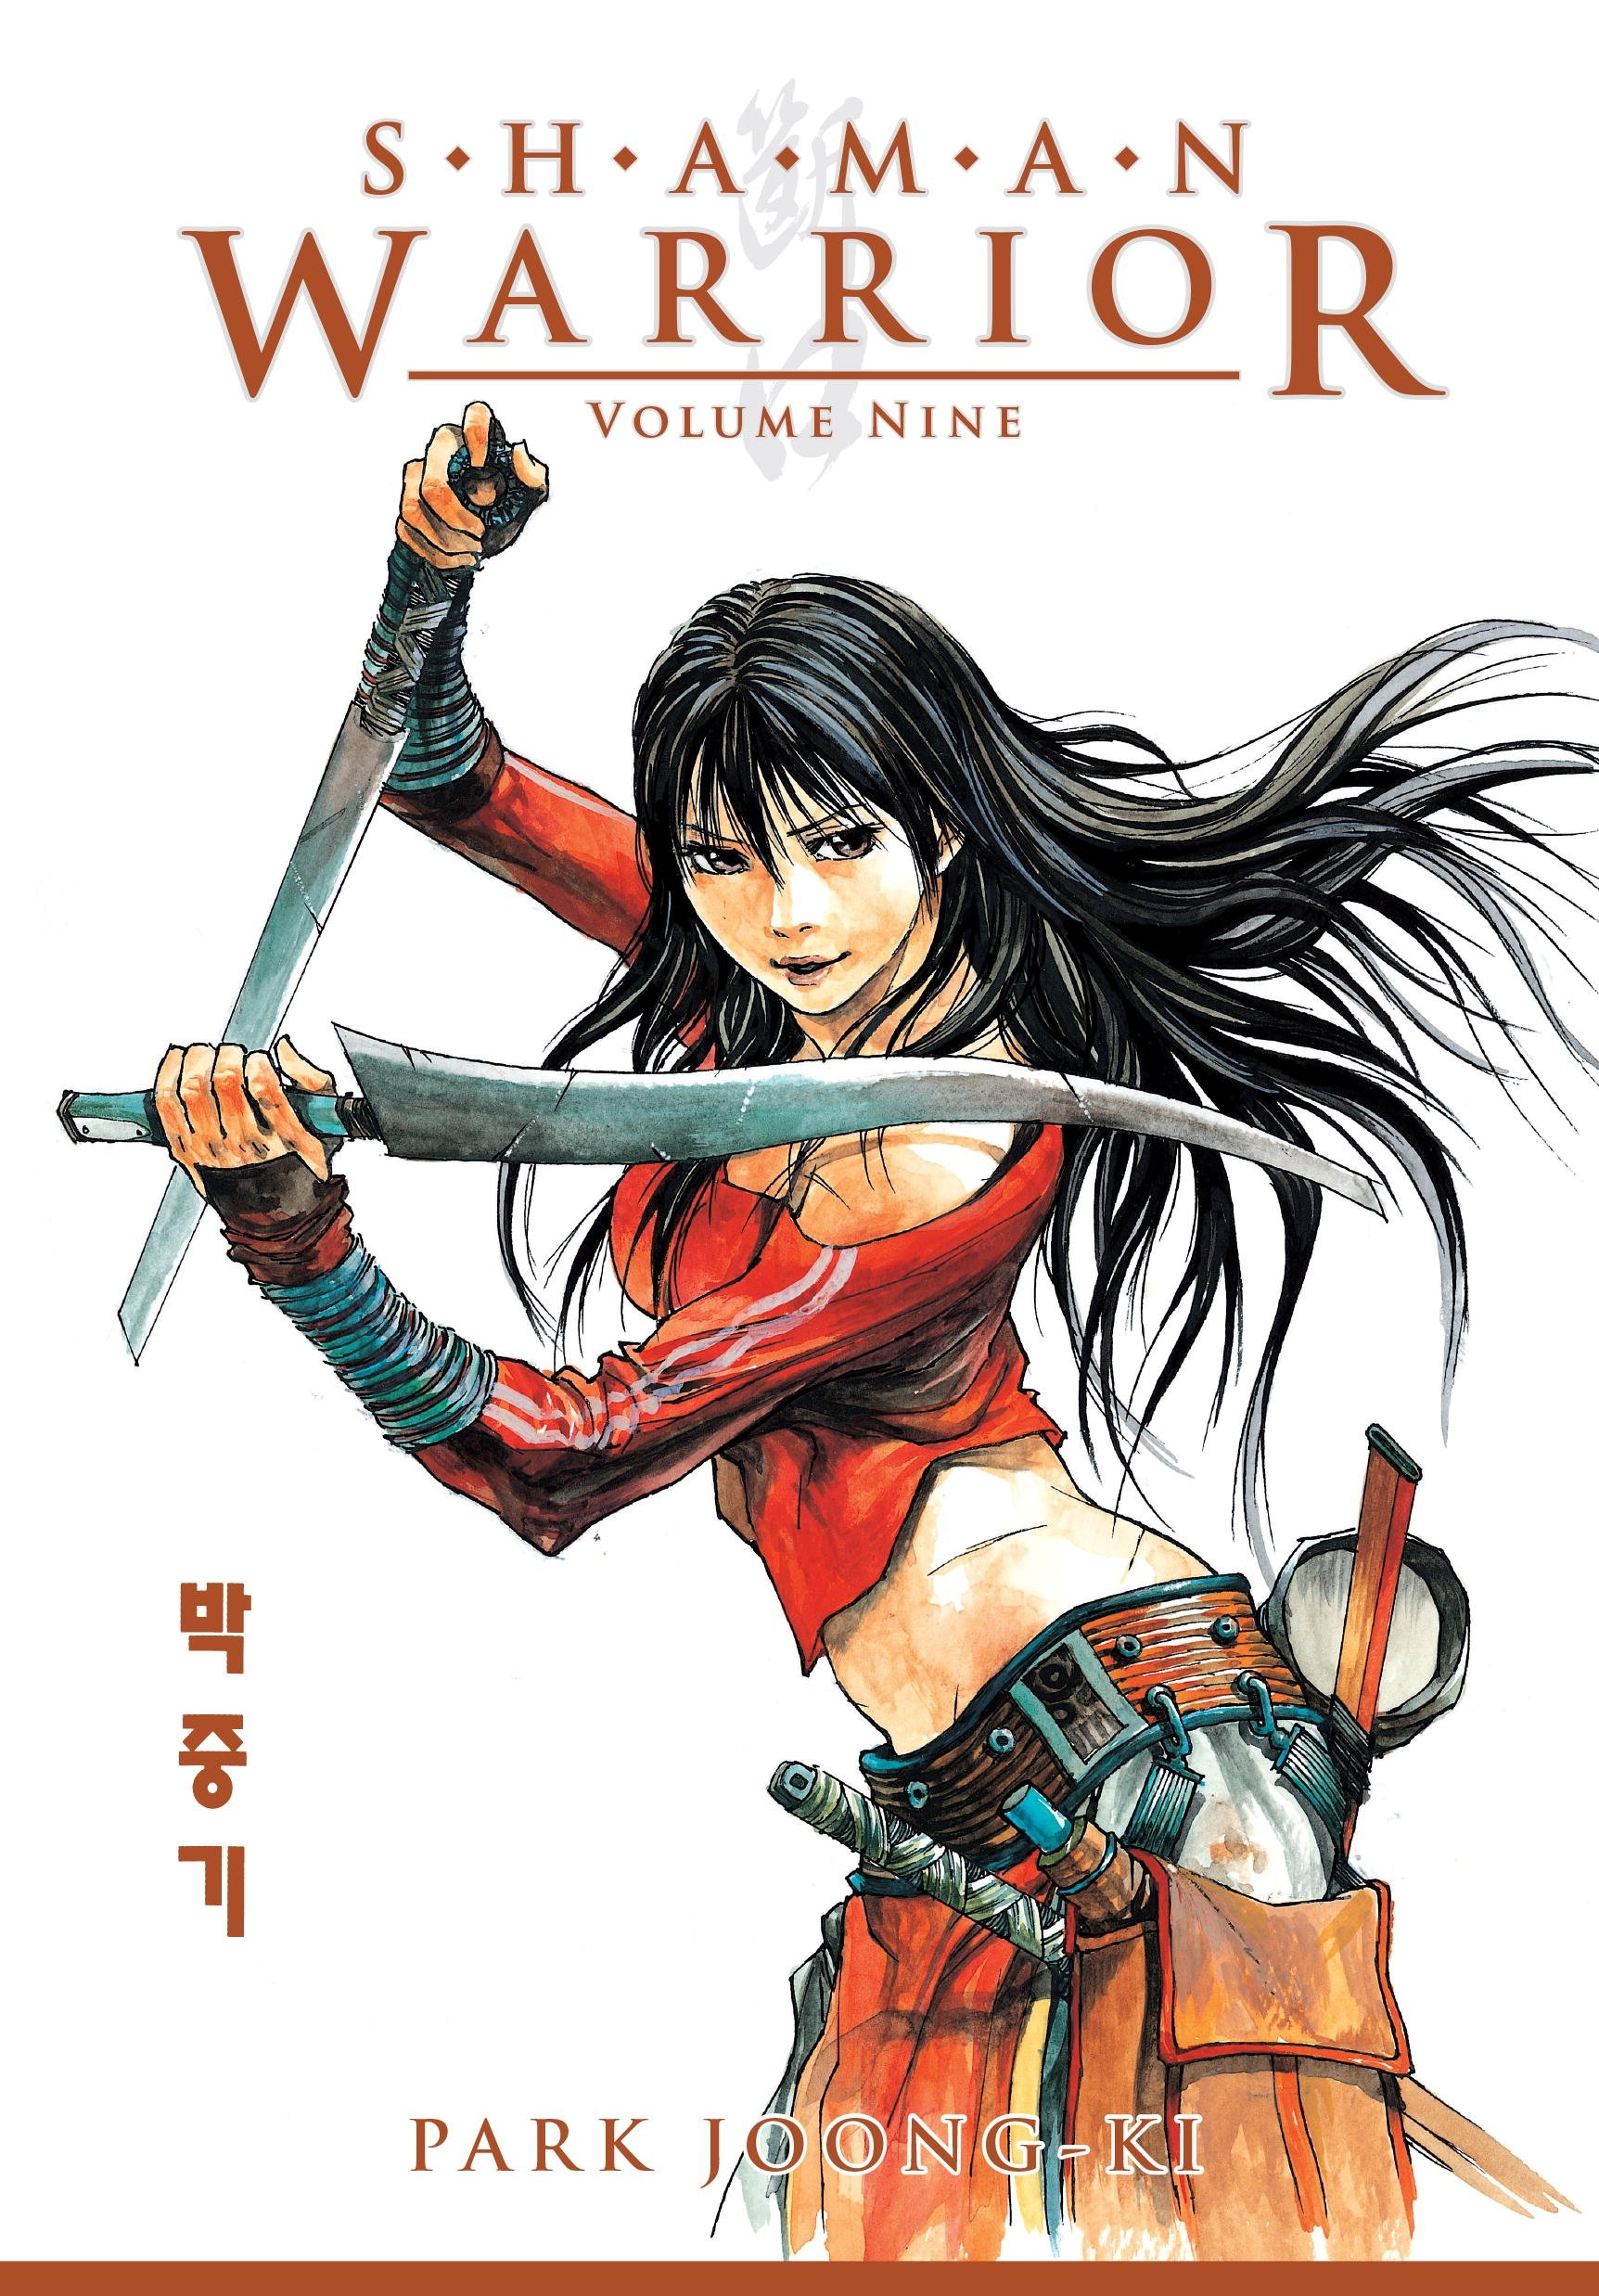 Shaman Warrior Volume 9 by Dark Horse Books